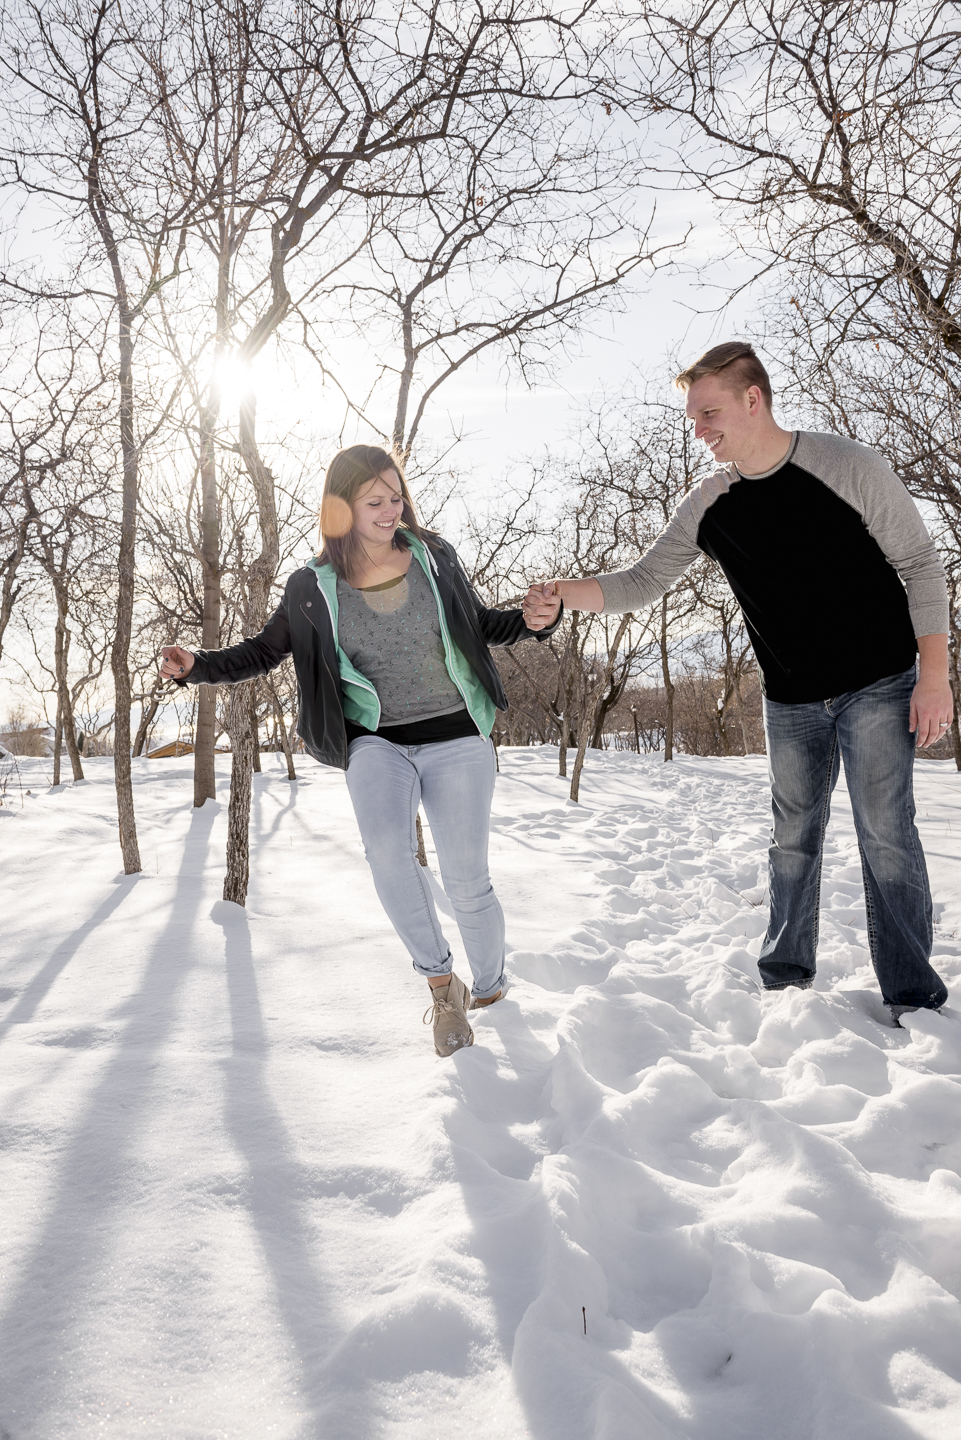 savage_couple_portrait_snow_pine_utah_Christin-6.jpg